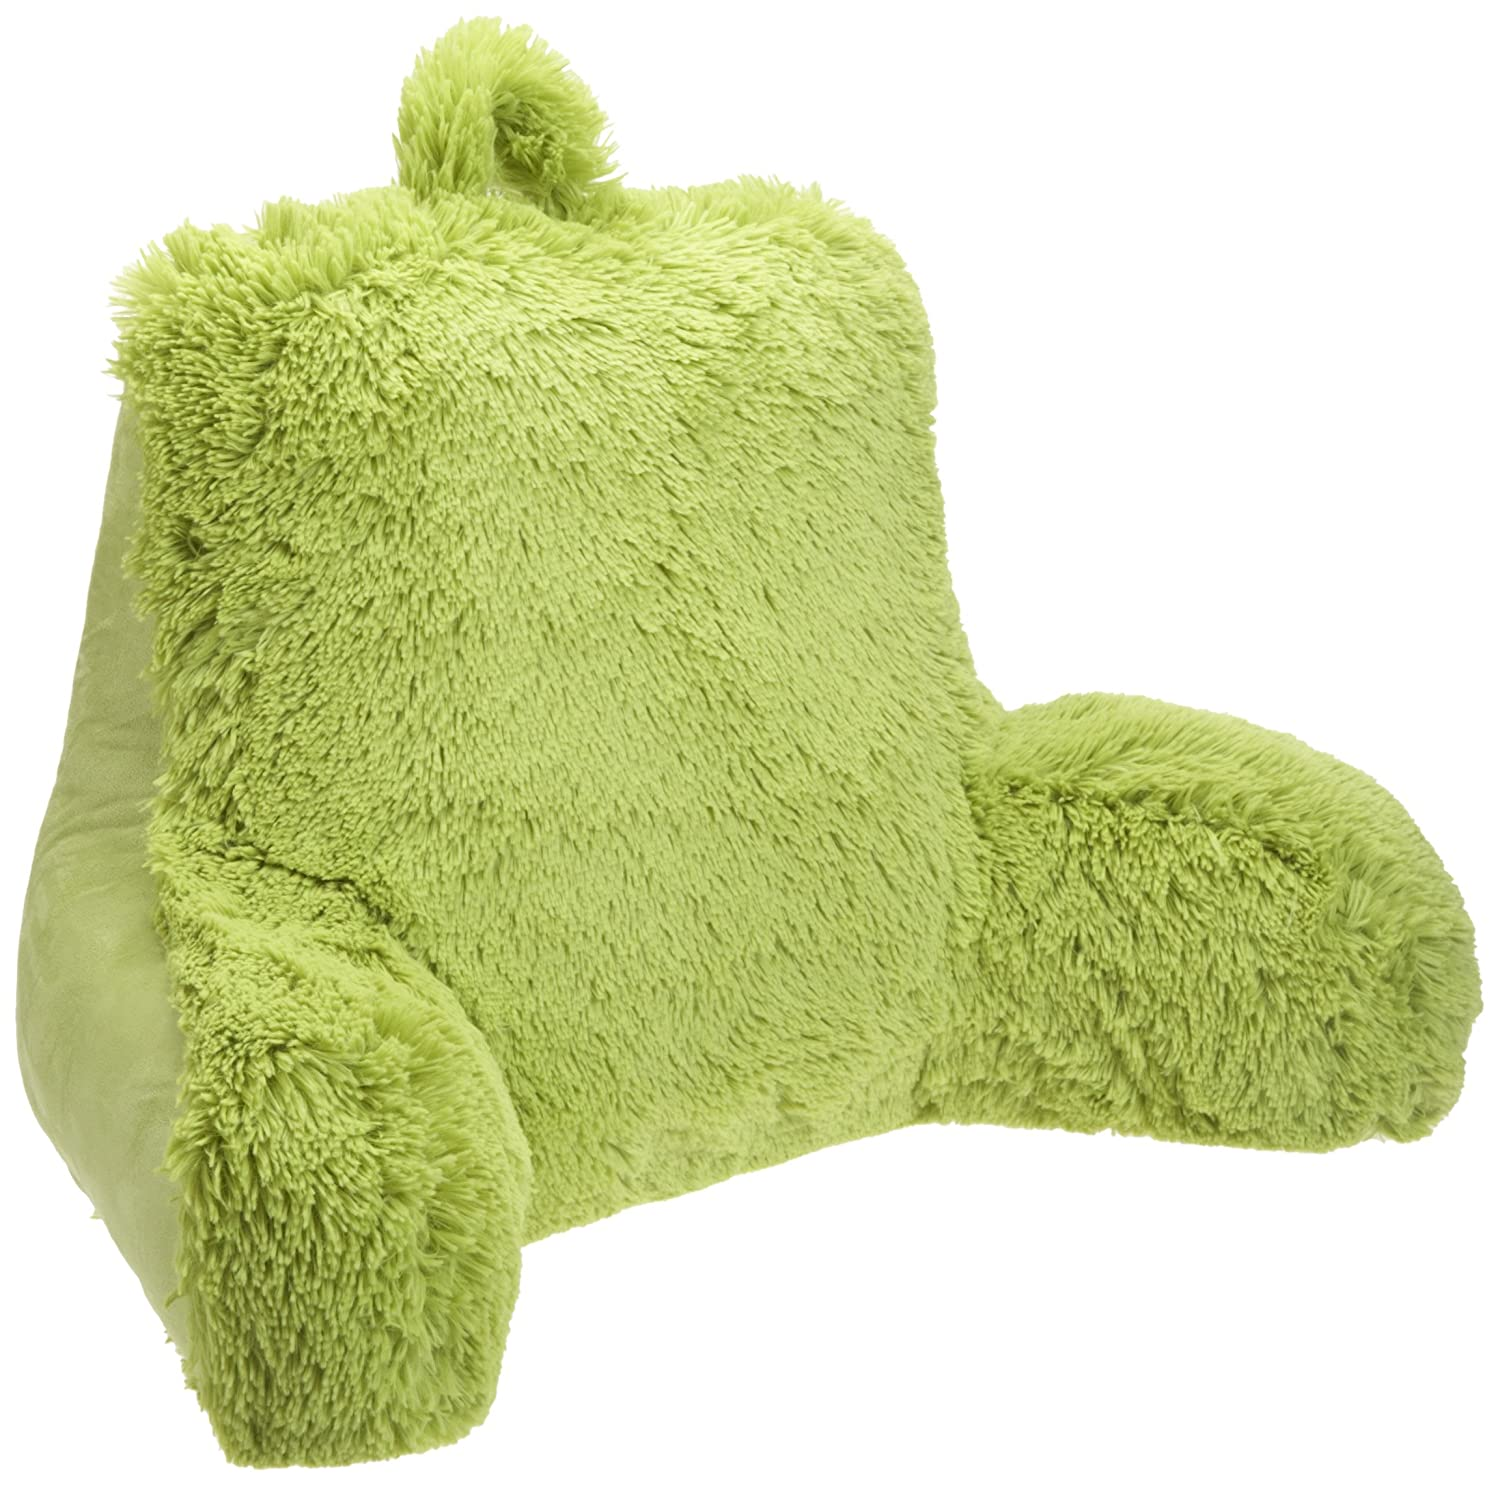 Bed rest pillow walmart - Shagalicious Bedrest Lime